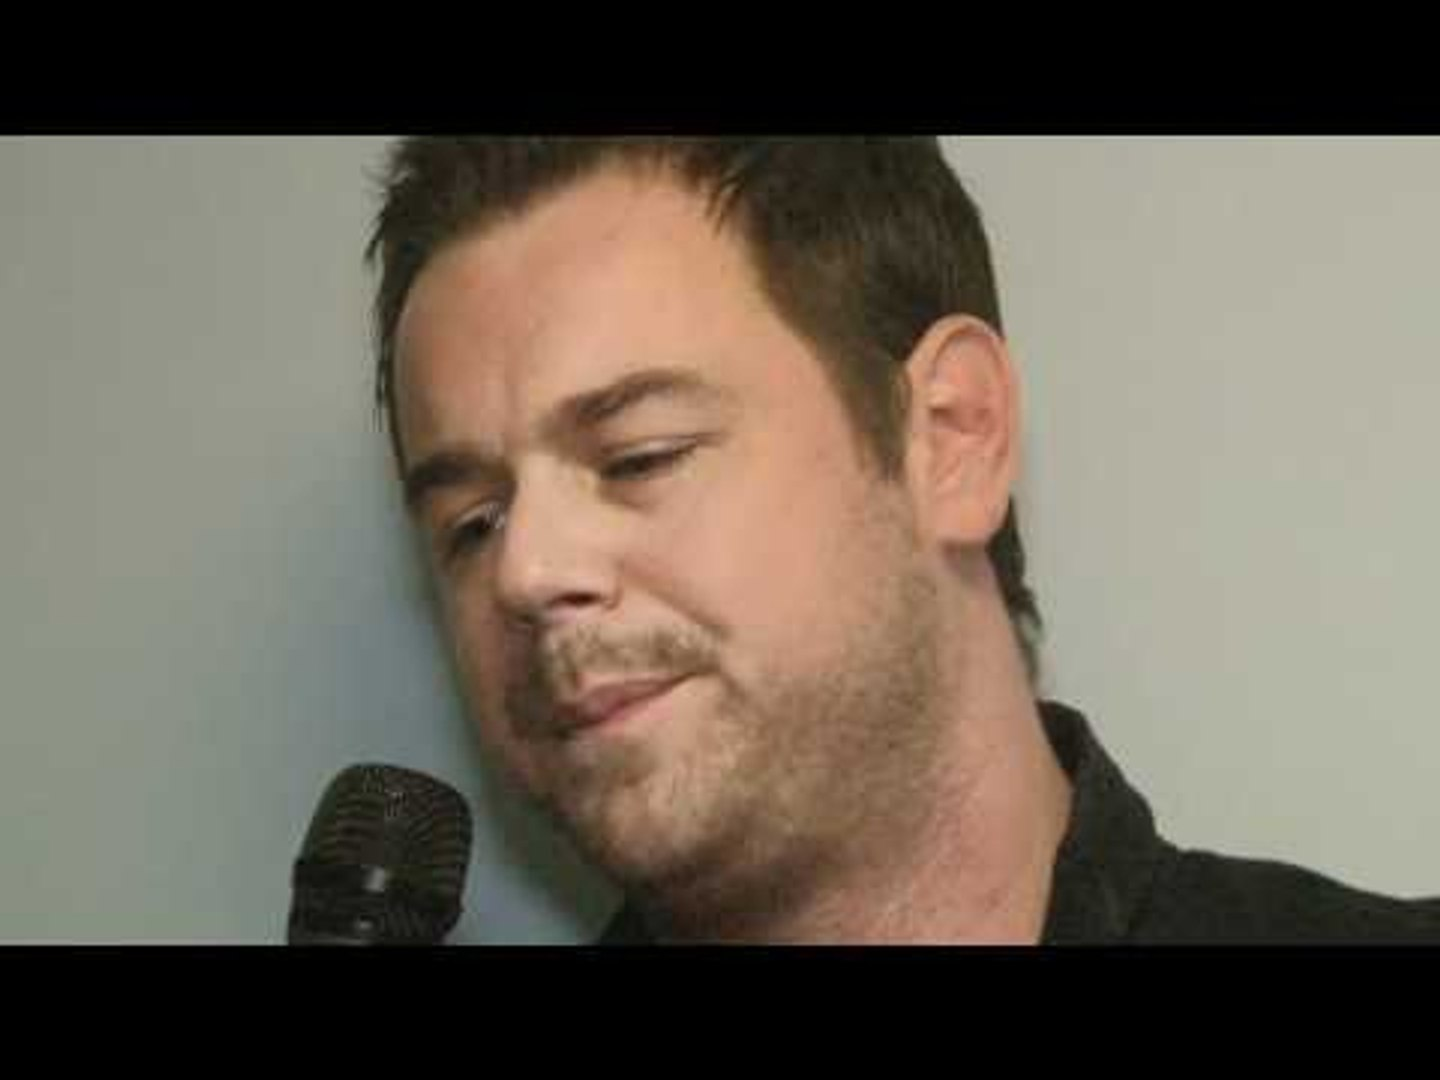 Danny Dyer Interview for iFILM LONDON / LIBERTYS SUPERCLUB (HARLOW)